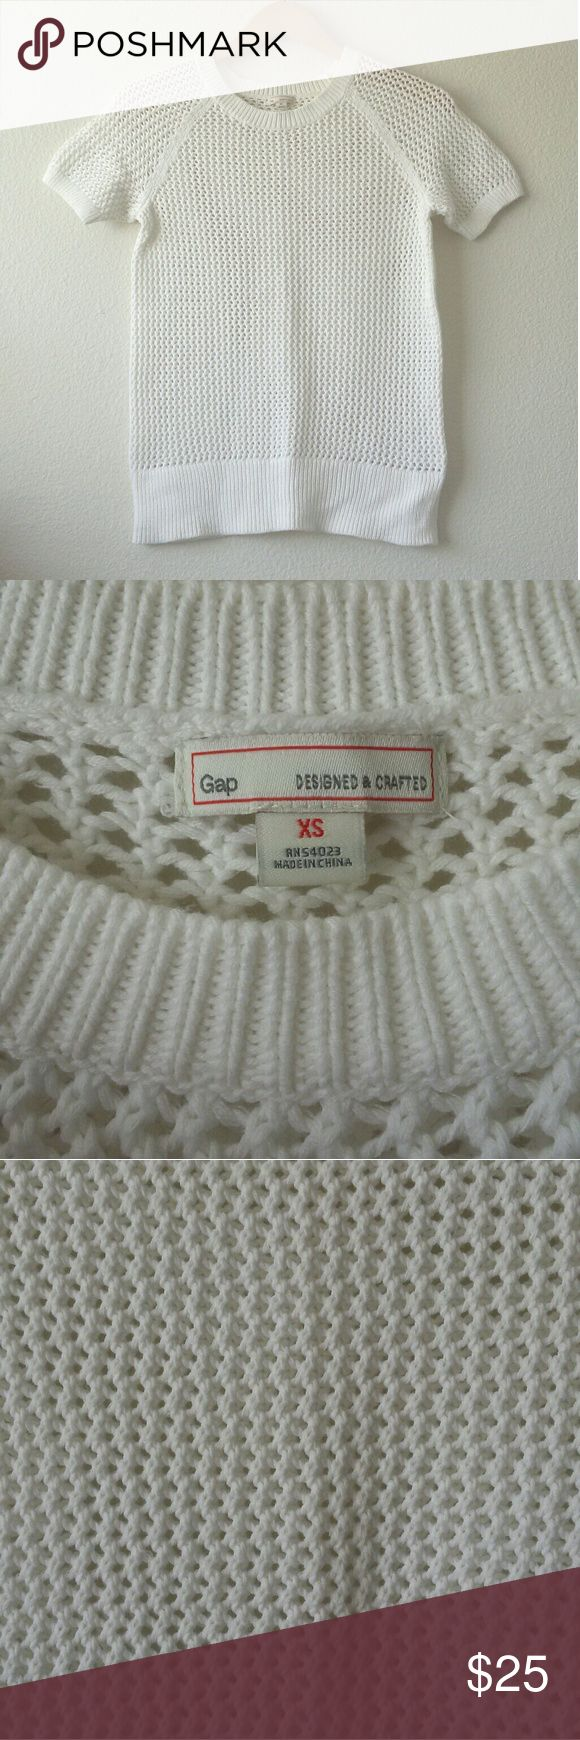 GAP white open knit sweater White open knit GAP sweater with short sleeves and a crew neck. Great for transitioning between seasons. In excellent condition. Size extra small. GAP Sweaters Crew & Scoop Necks